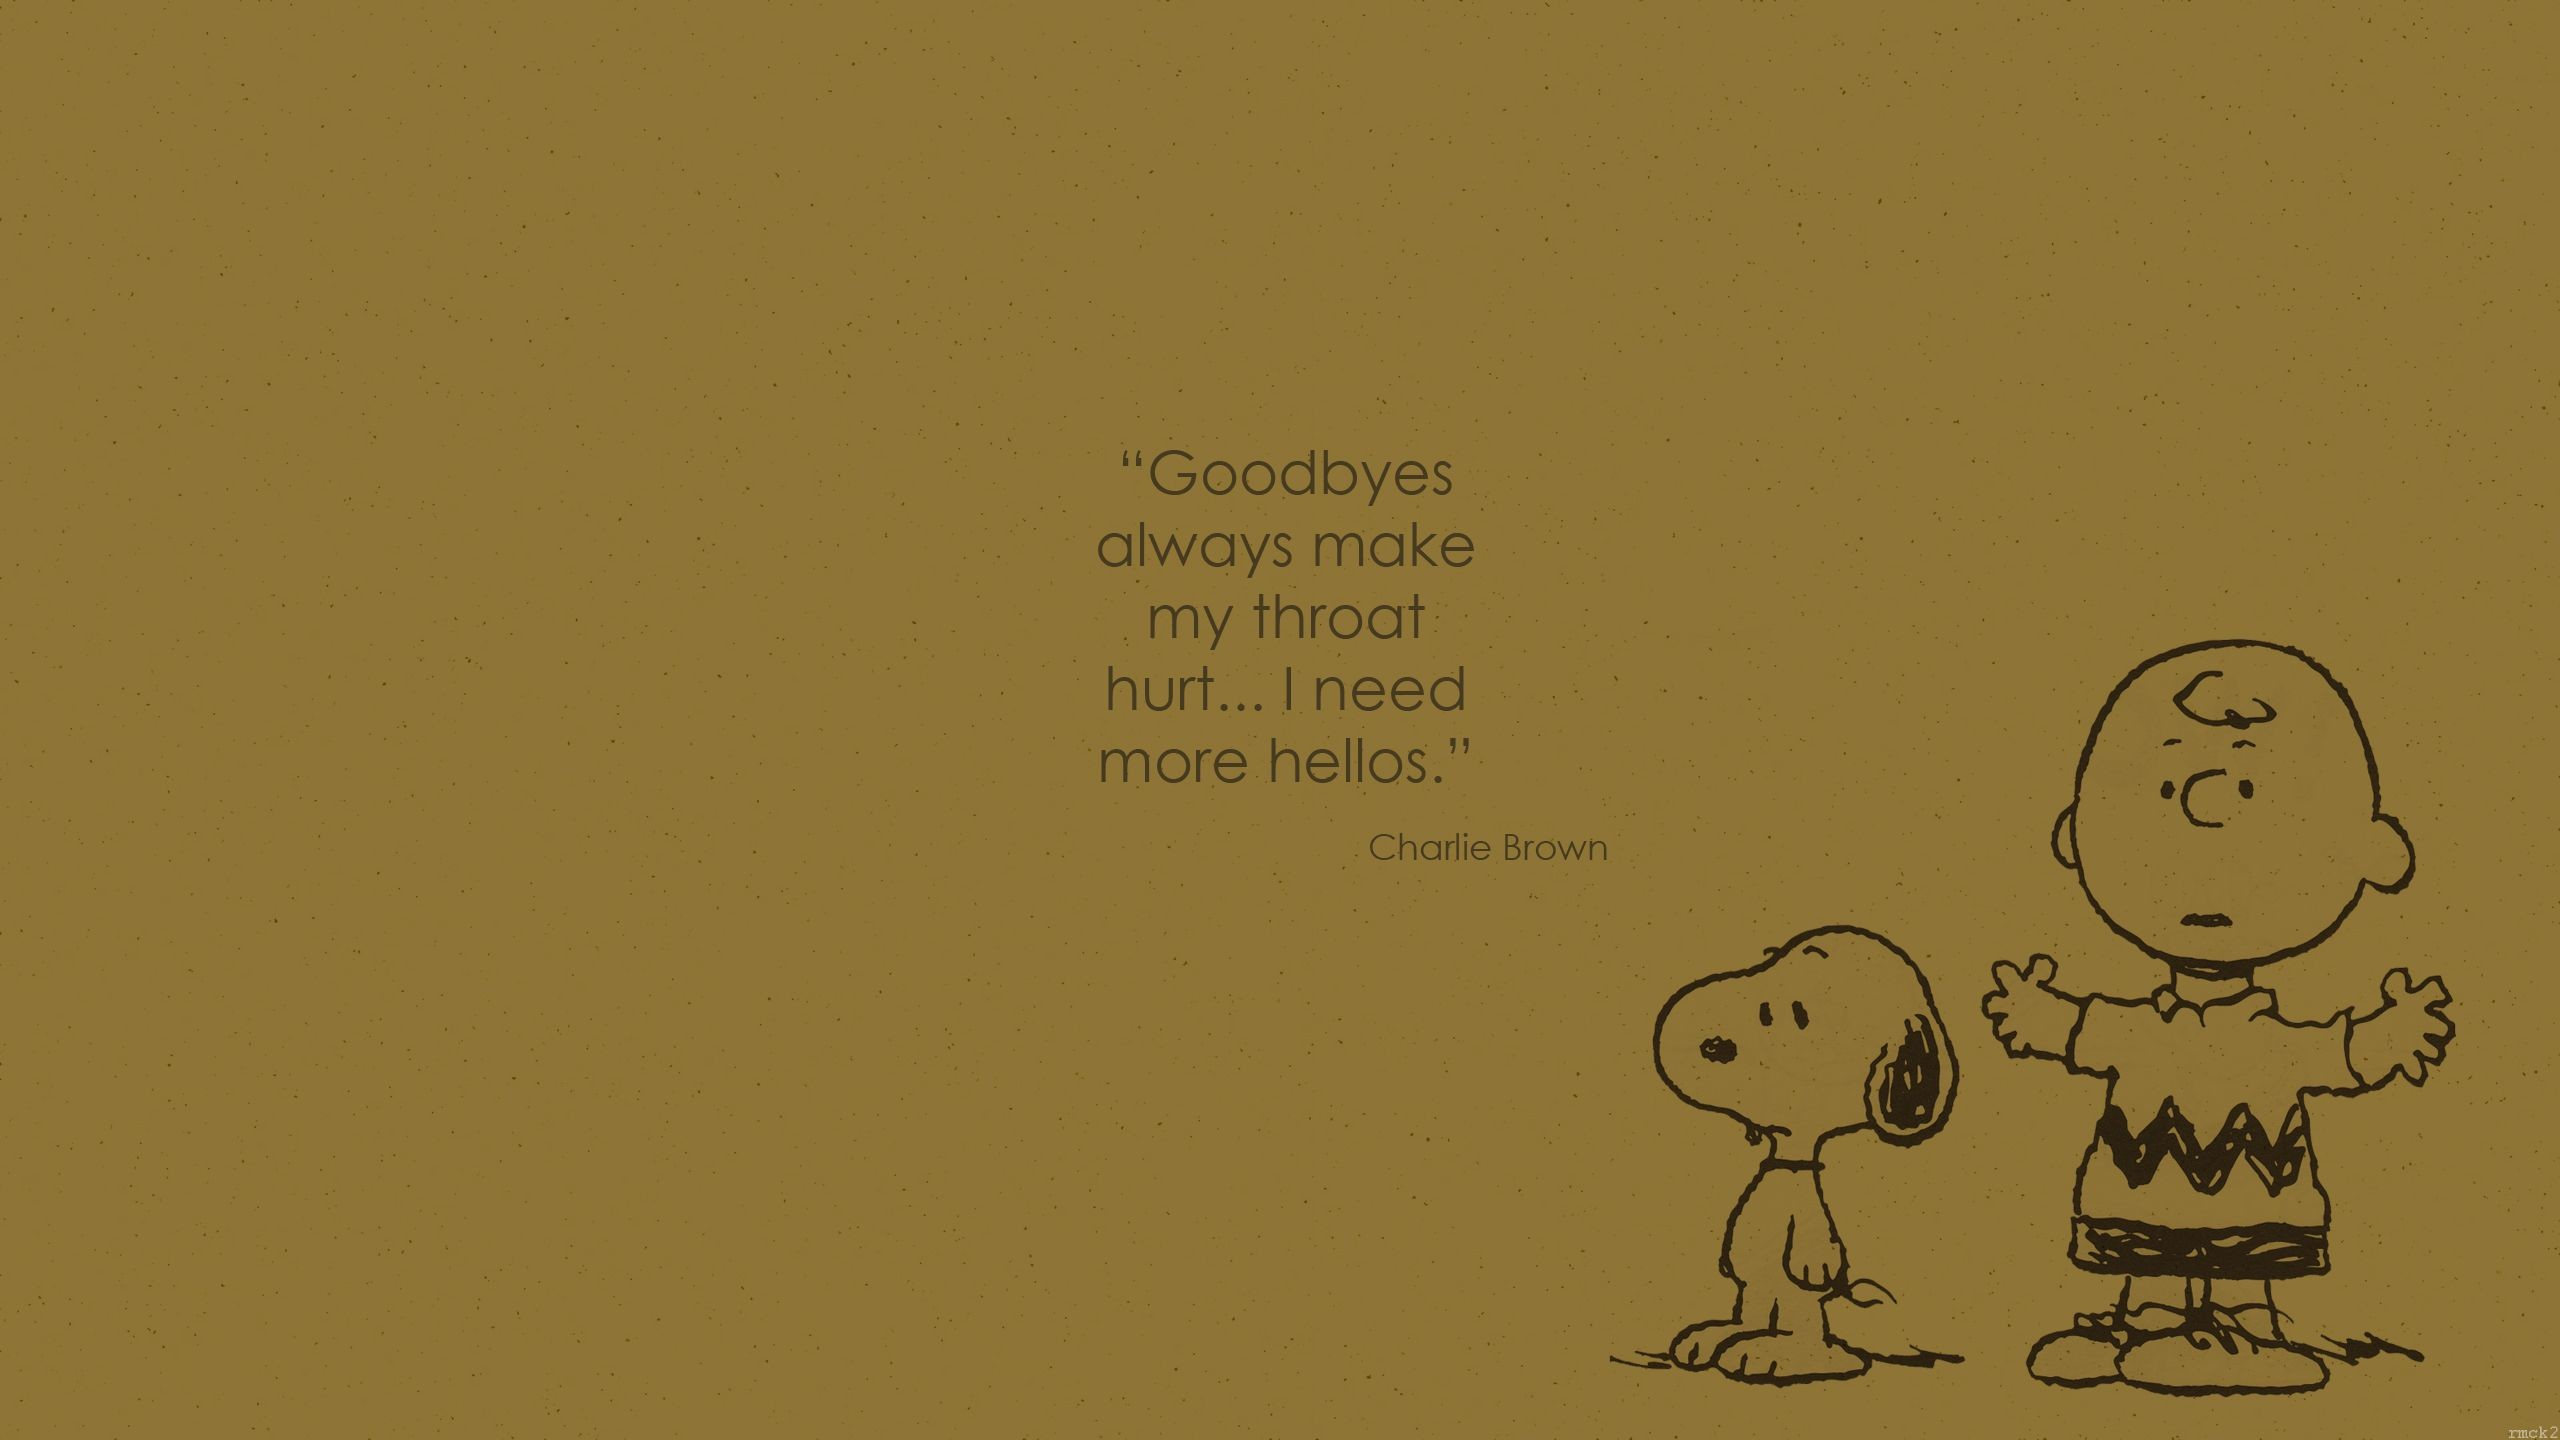 Wallpaper Charlie Brown quote 1 by rmck2 on DeviantArt